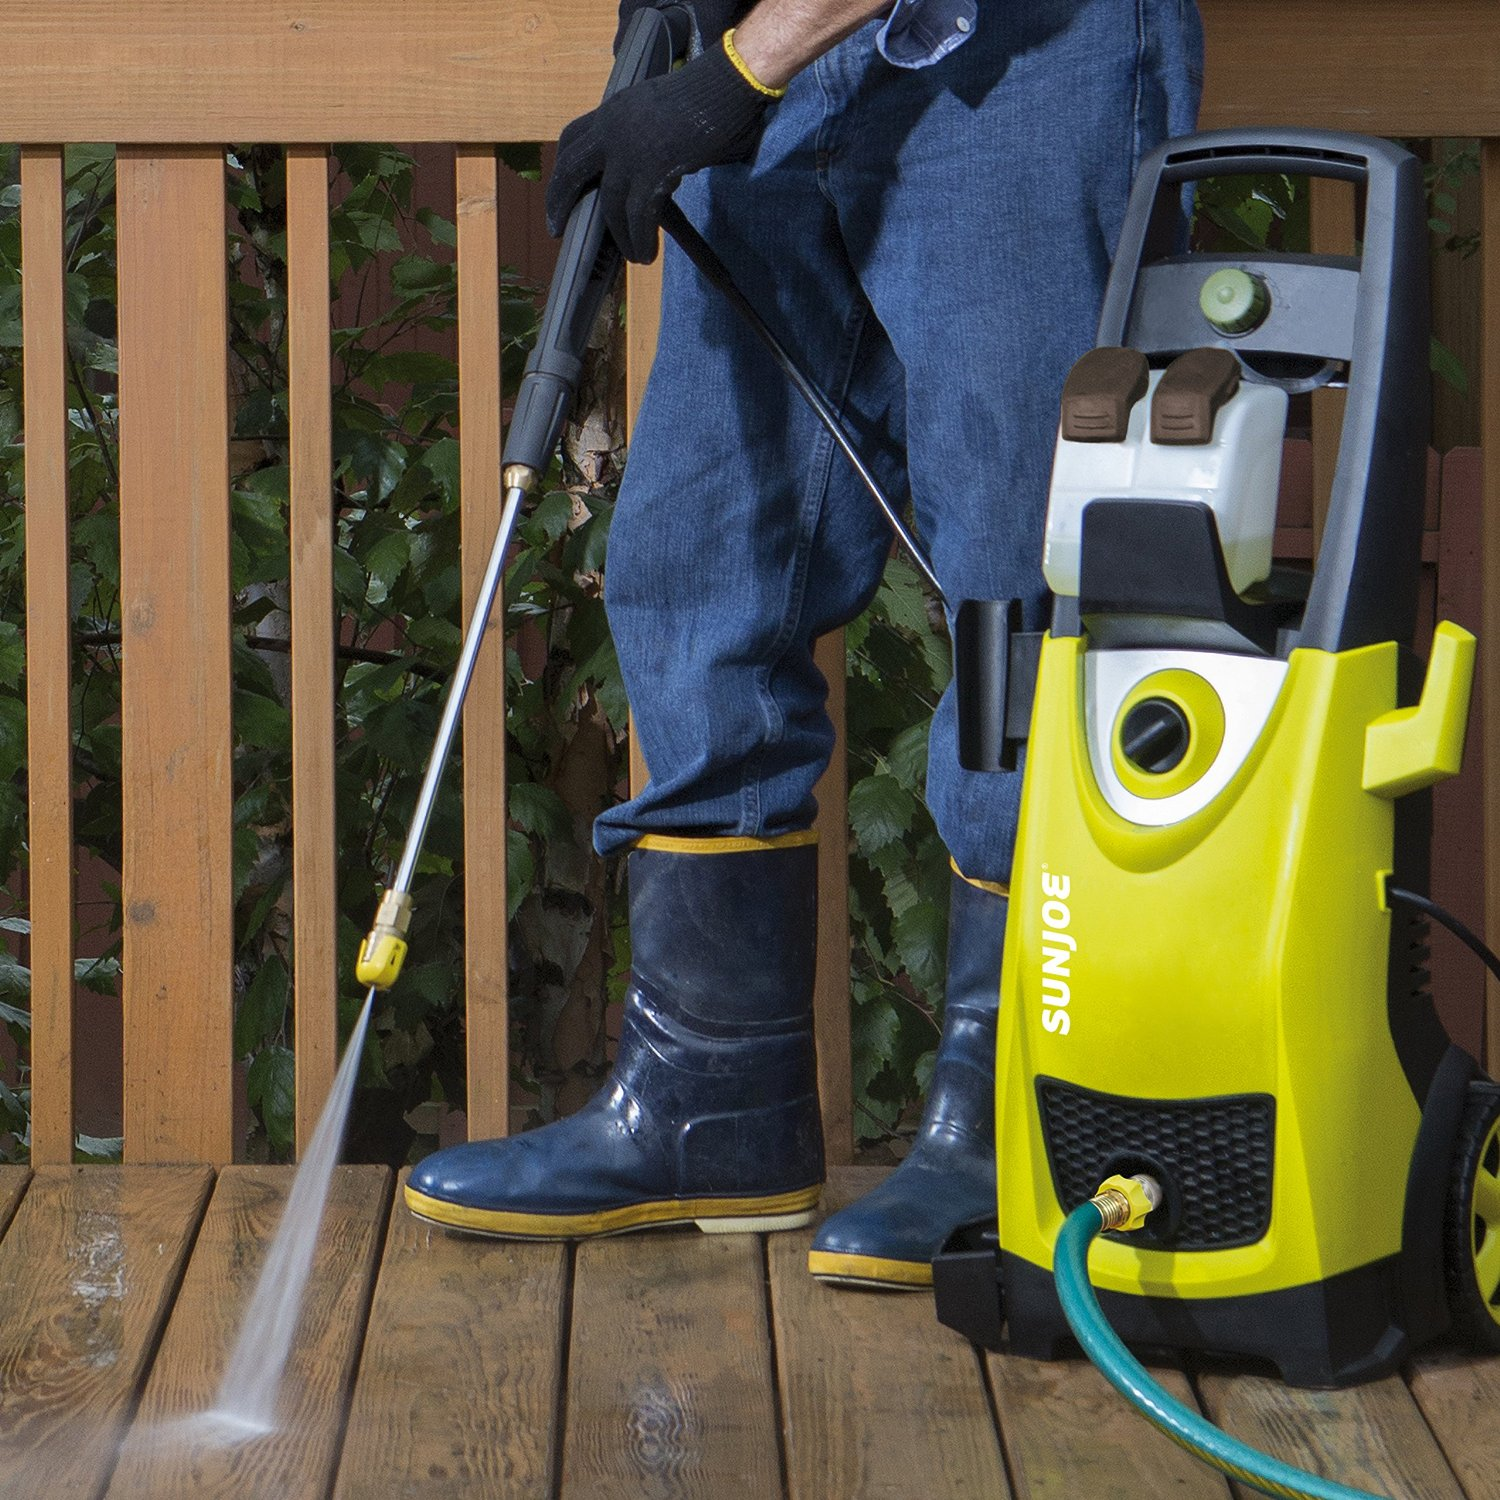 Snow Joe/Sun Joe Pressure Joe SPX3000 Electric Pressure Washer